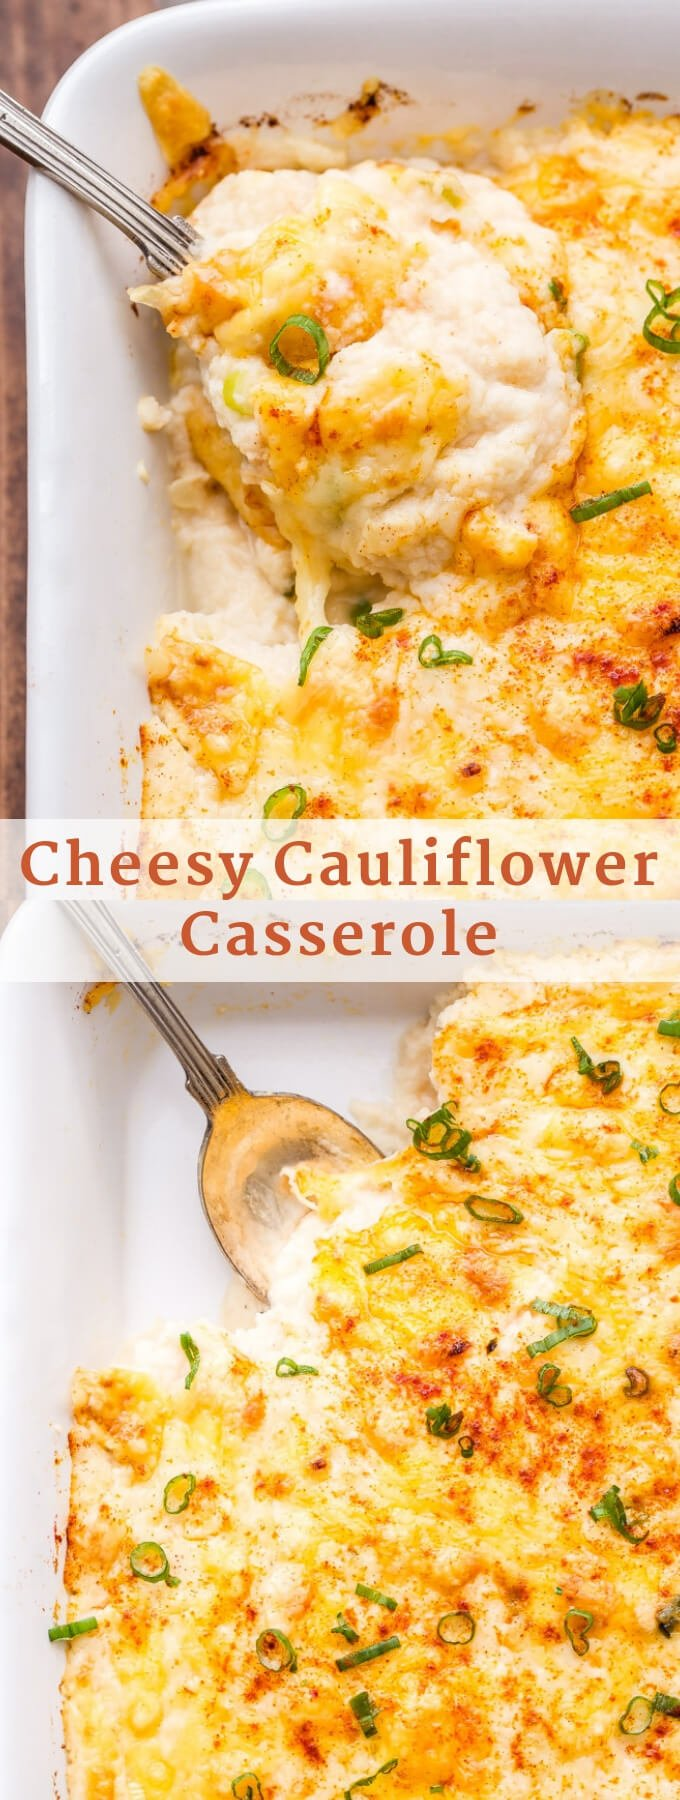 Add this Cheesy Cauliflower Casserole to your holiday menu for a delicious side dish everyone will love! All the flavor of cheesy mashed potatoes without all the carbs! #cauliflower #lowcarb #sidedish #thanksgiving #cauliflowercasserole #cheese #christmas